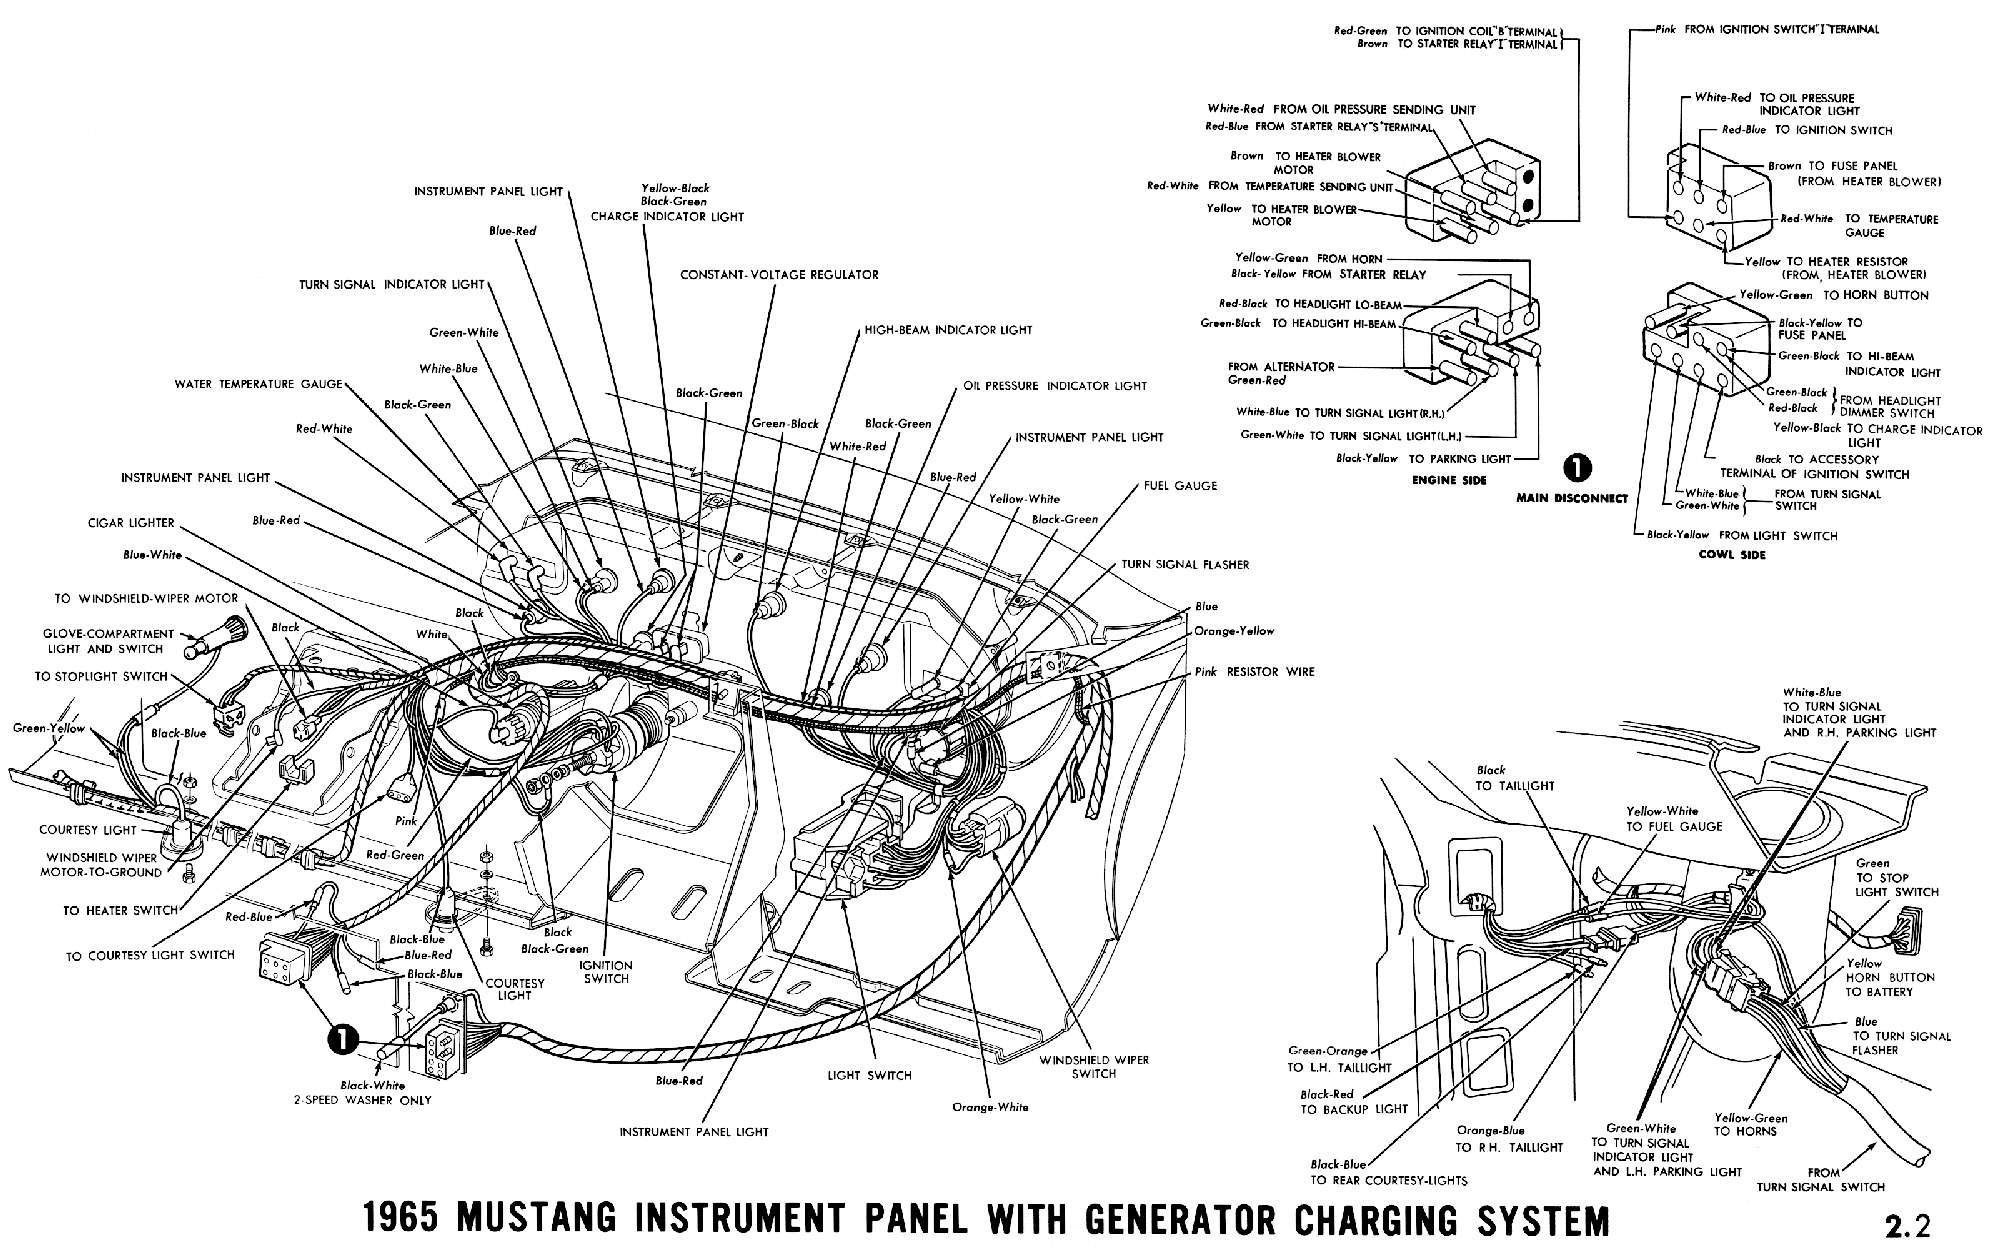 1964 Mercury Marauder Wiring Diagram 1994 Ford F150 Wire Diagram For Wiring Diagram Schematics